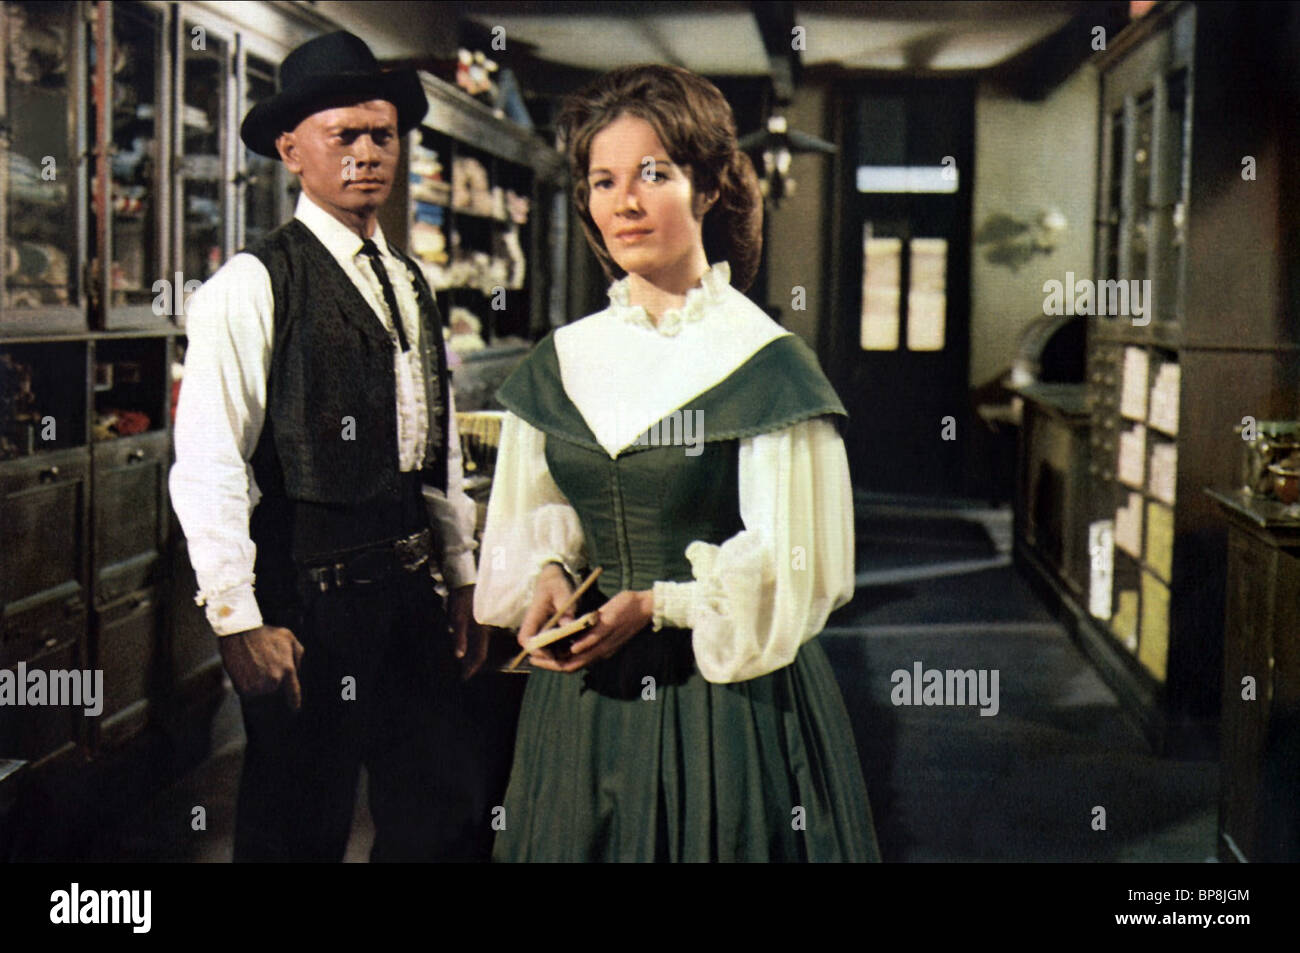 Yul brynner janice rule invitation to a gunfighter 1964 stock yul brynner janice rule invitation to a gunfighter 1964 stopboris Gallery